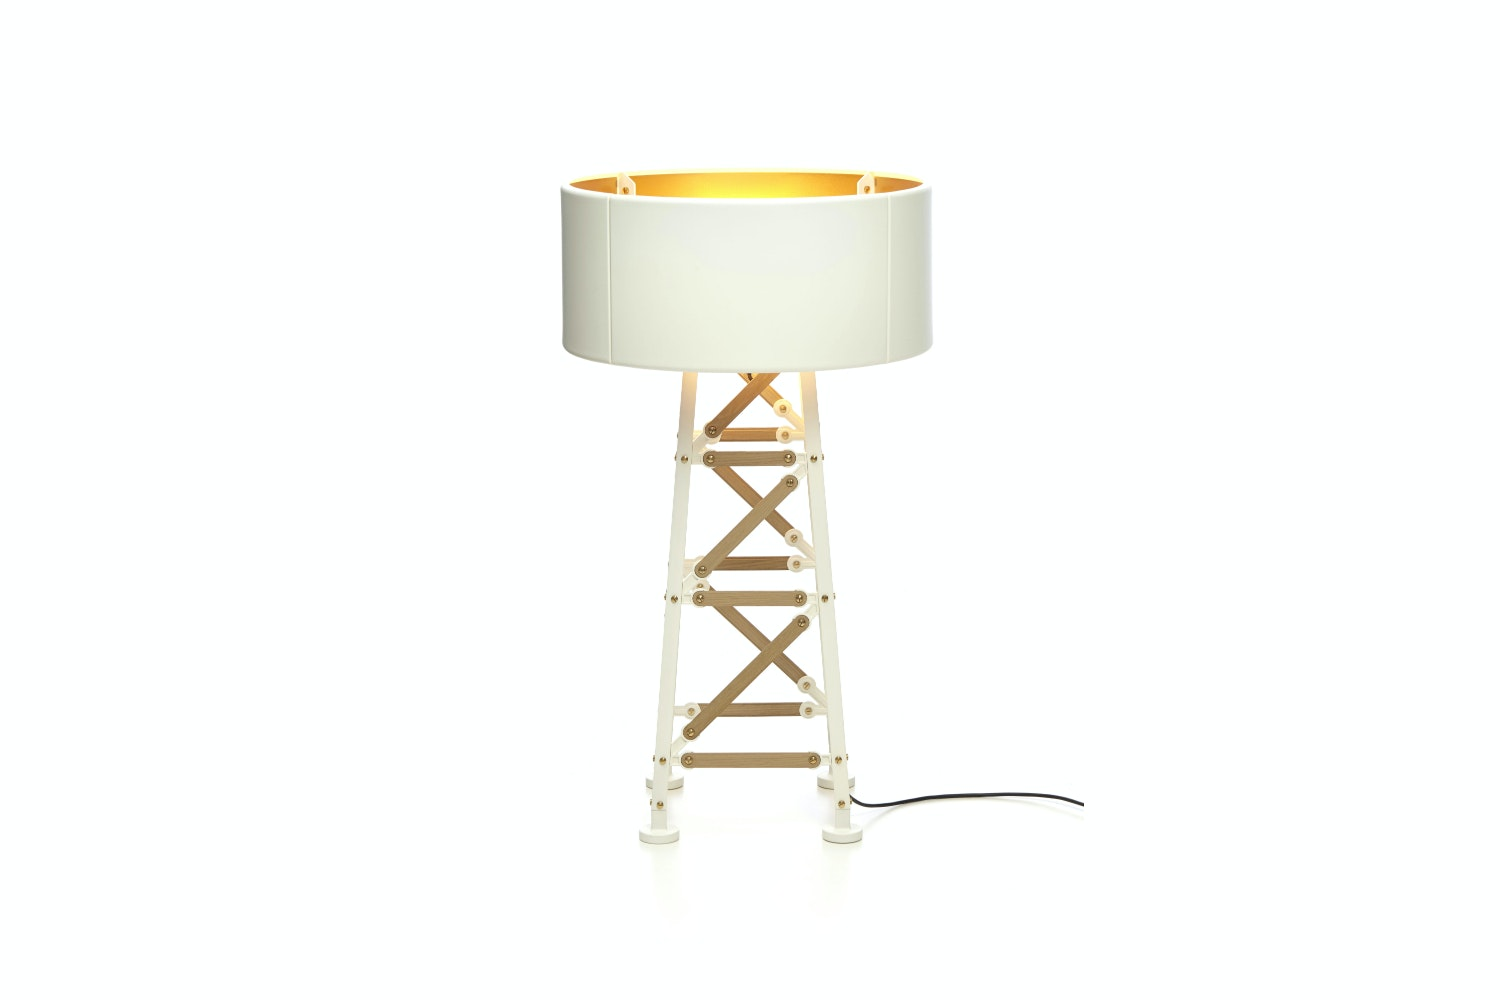 Construction Lamp S by Joost van Bleiswijk for Moooi